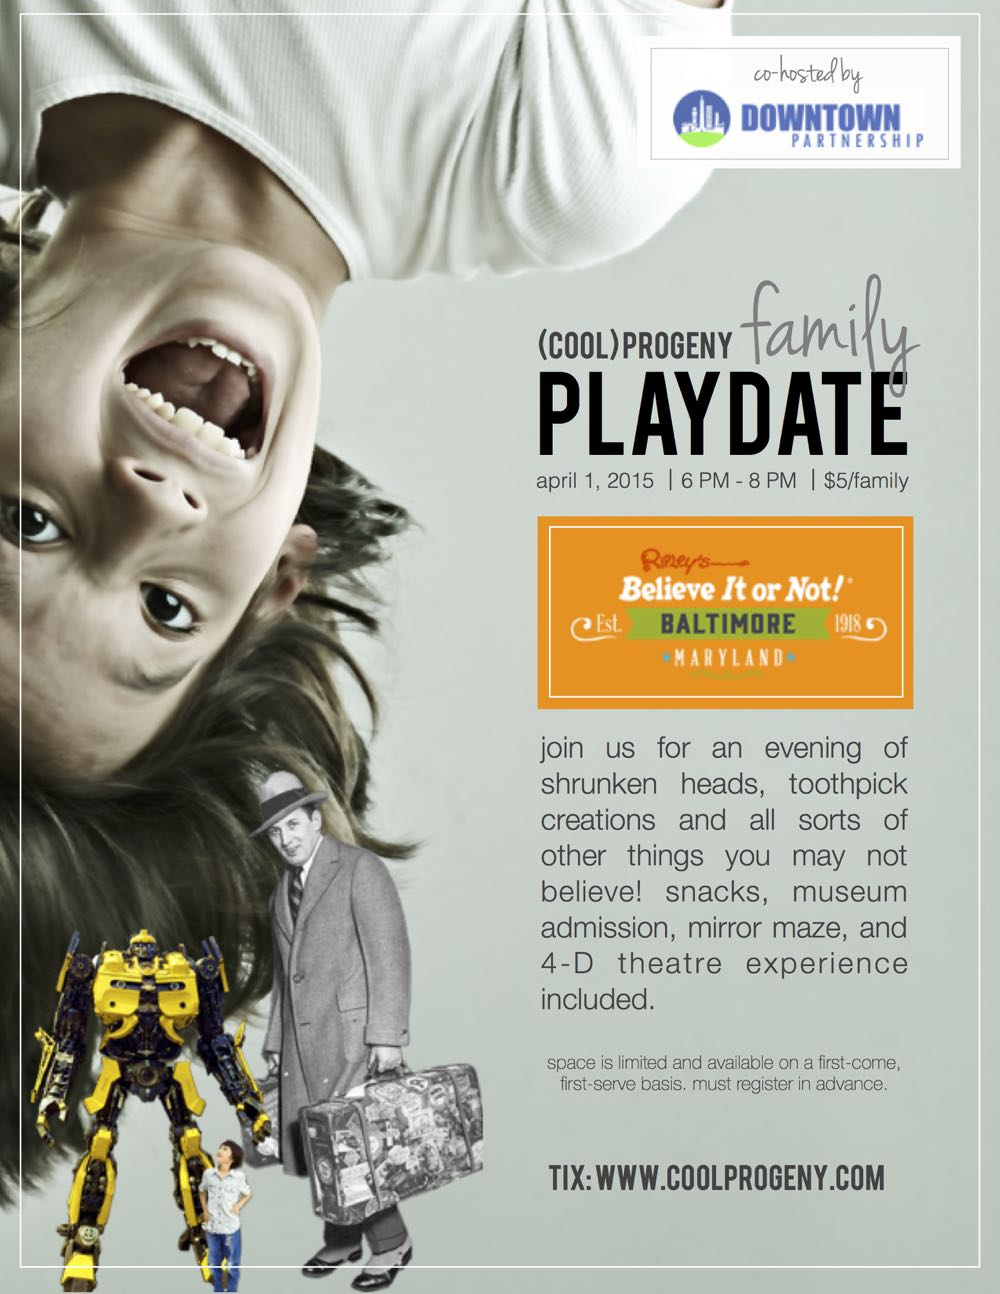 (cool) progeny family playdate: ripley's believe it or not #cpplaydate